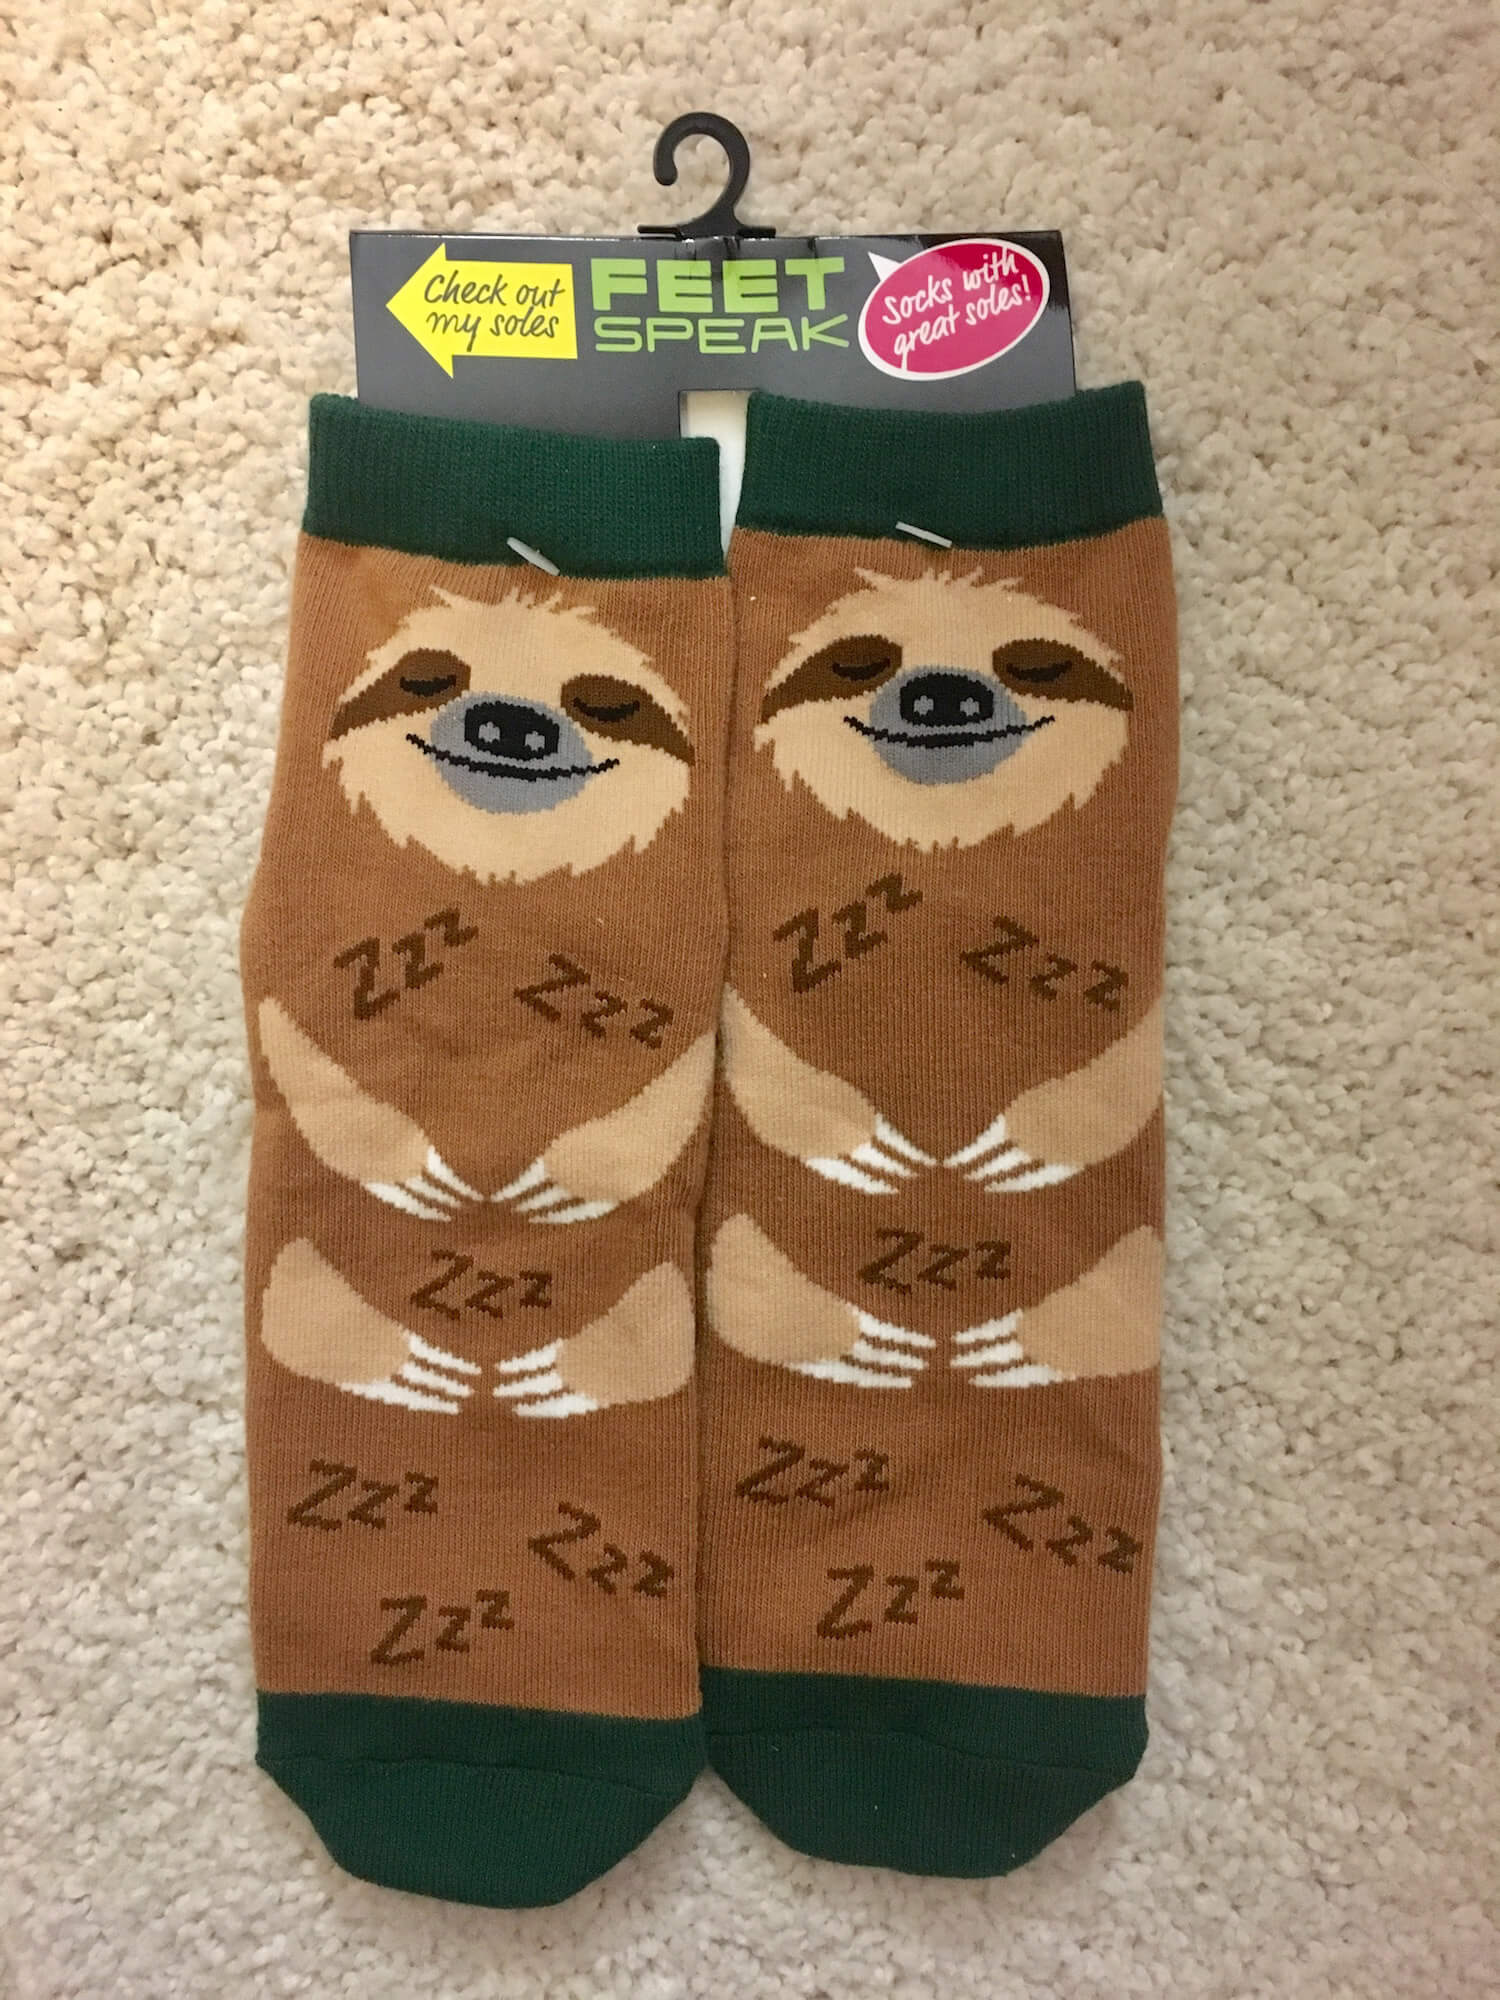 A pair of socks made to look like sleeping sloths